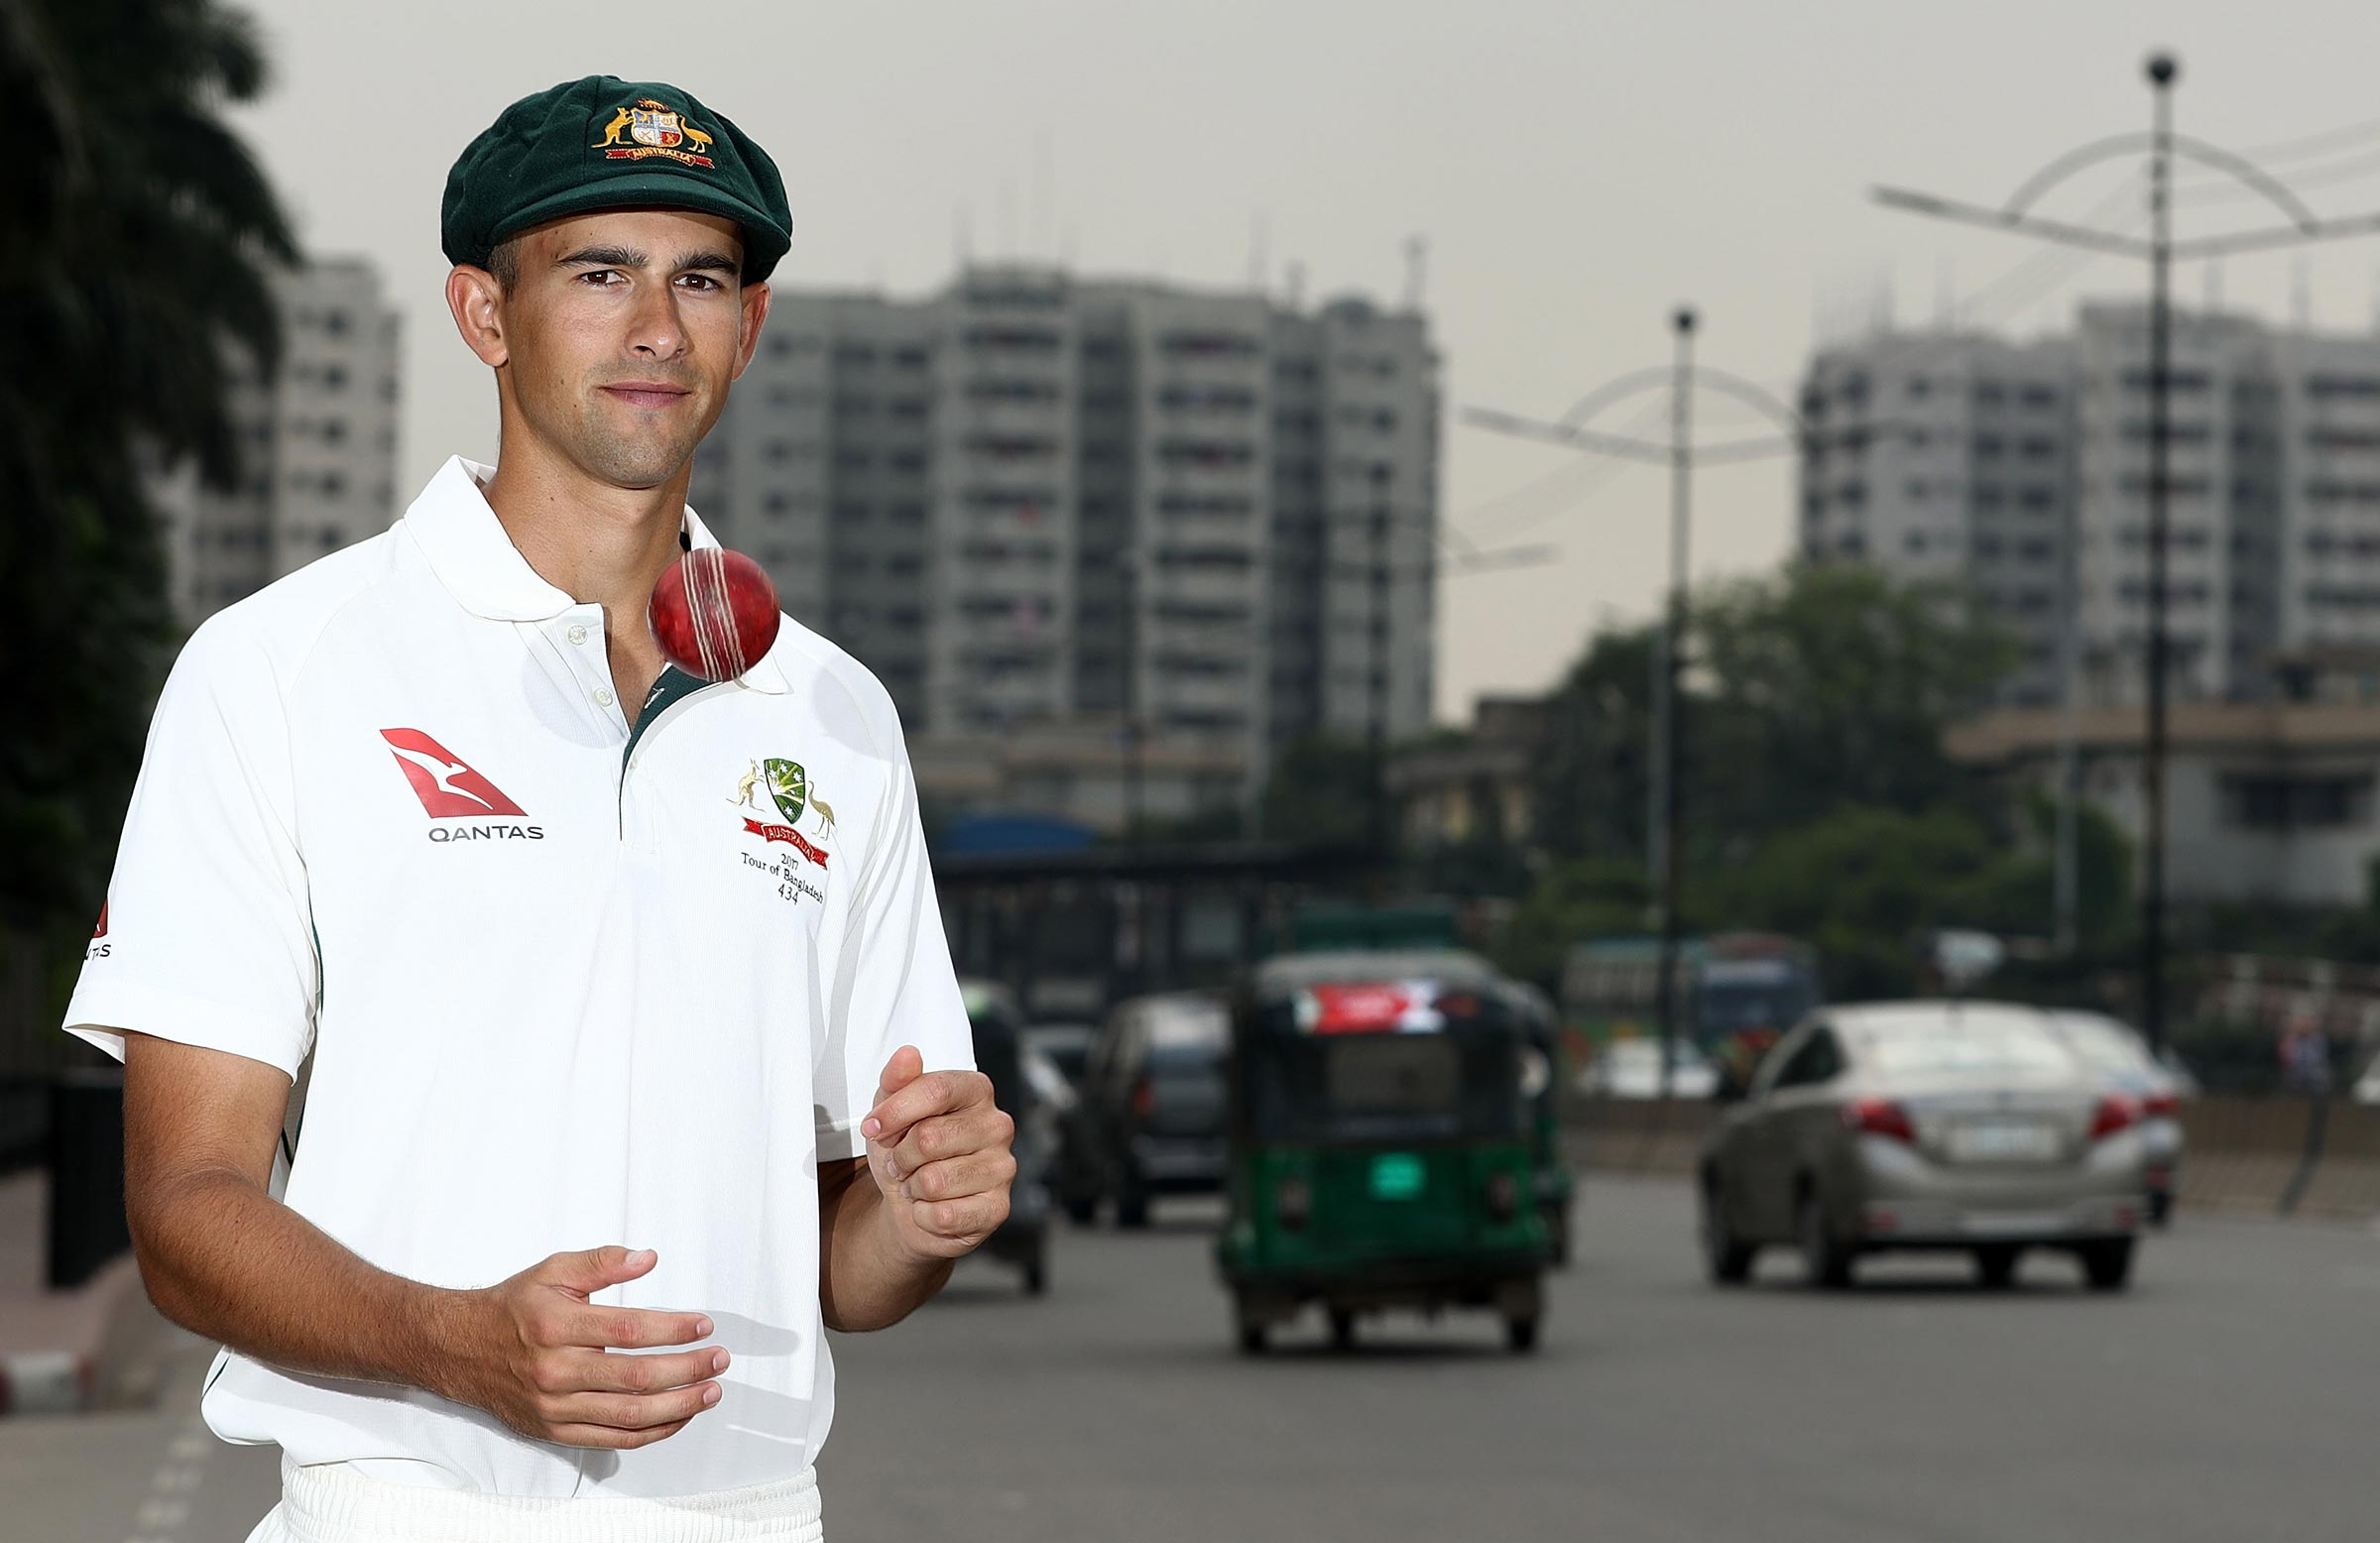 Bangladesh claim first ever Test victory against Australia